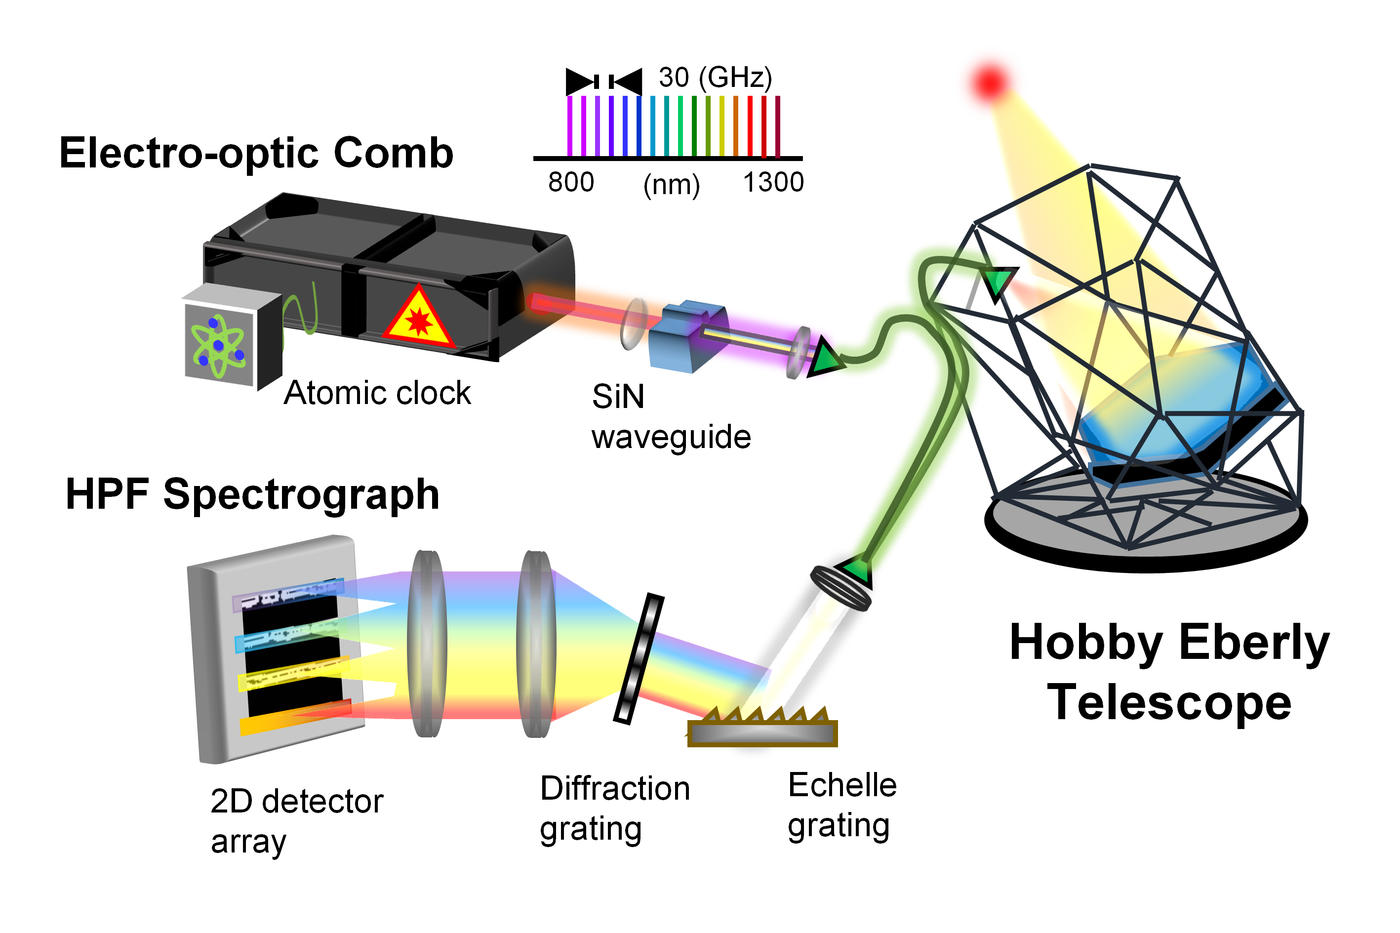 illustration of the different components of the astrocomb setup, including the telescope, electro-optic comb, and spectrograph.